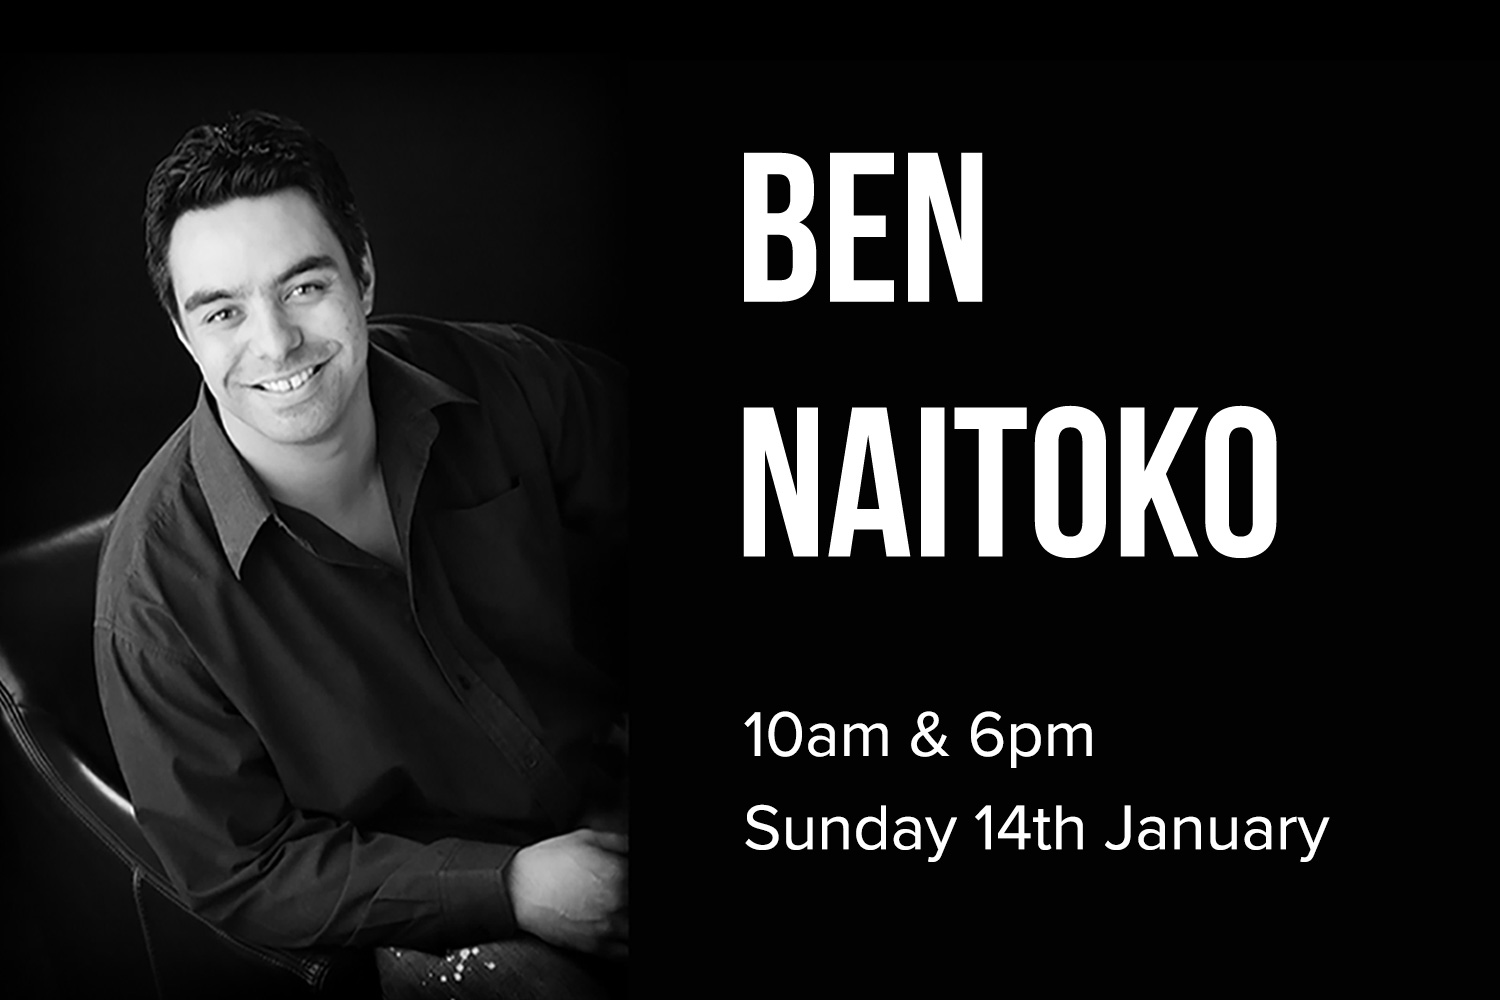 Ben-Niatoko-2017-Featured-Event.jpg